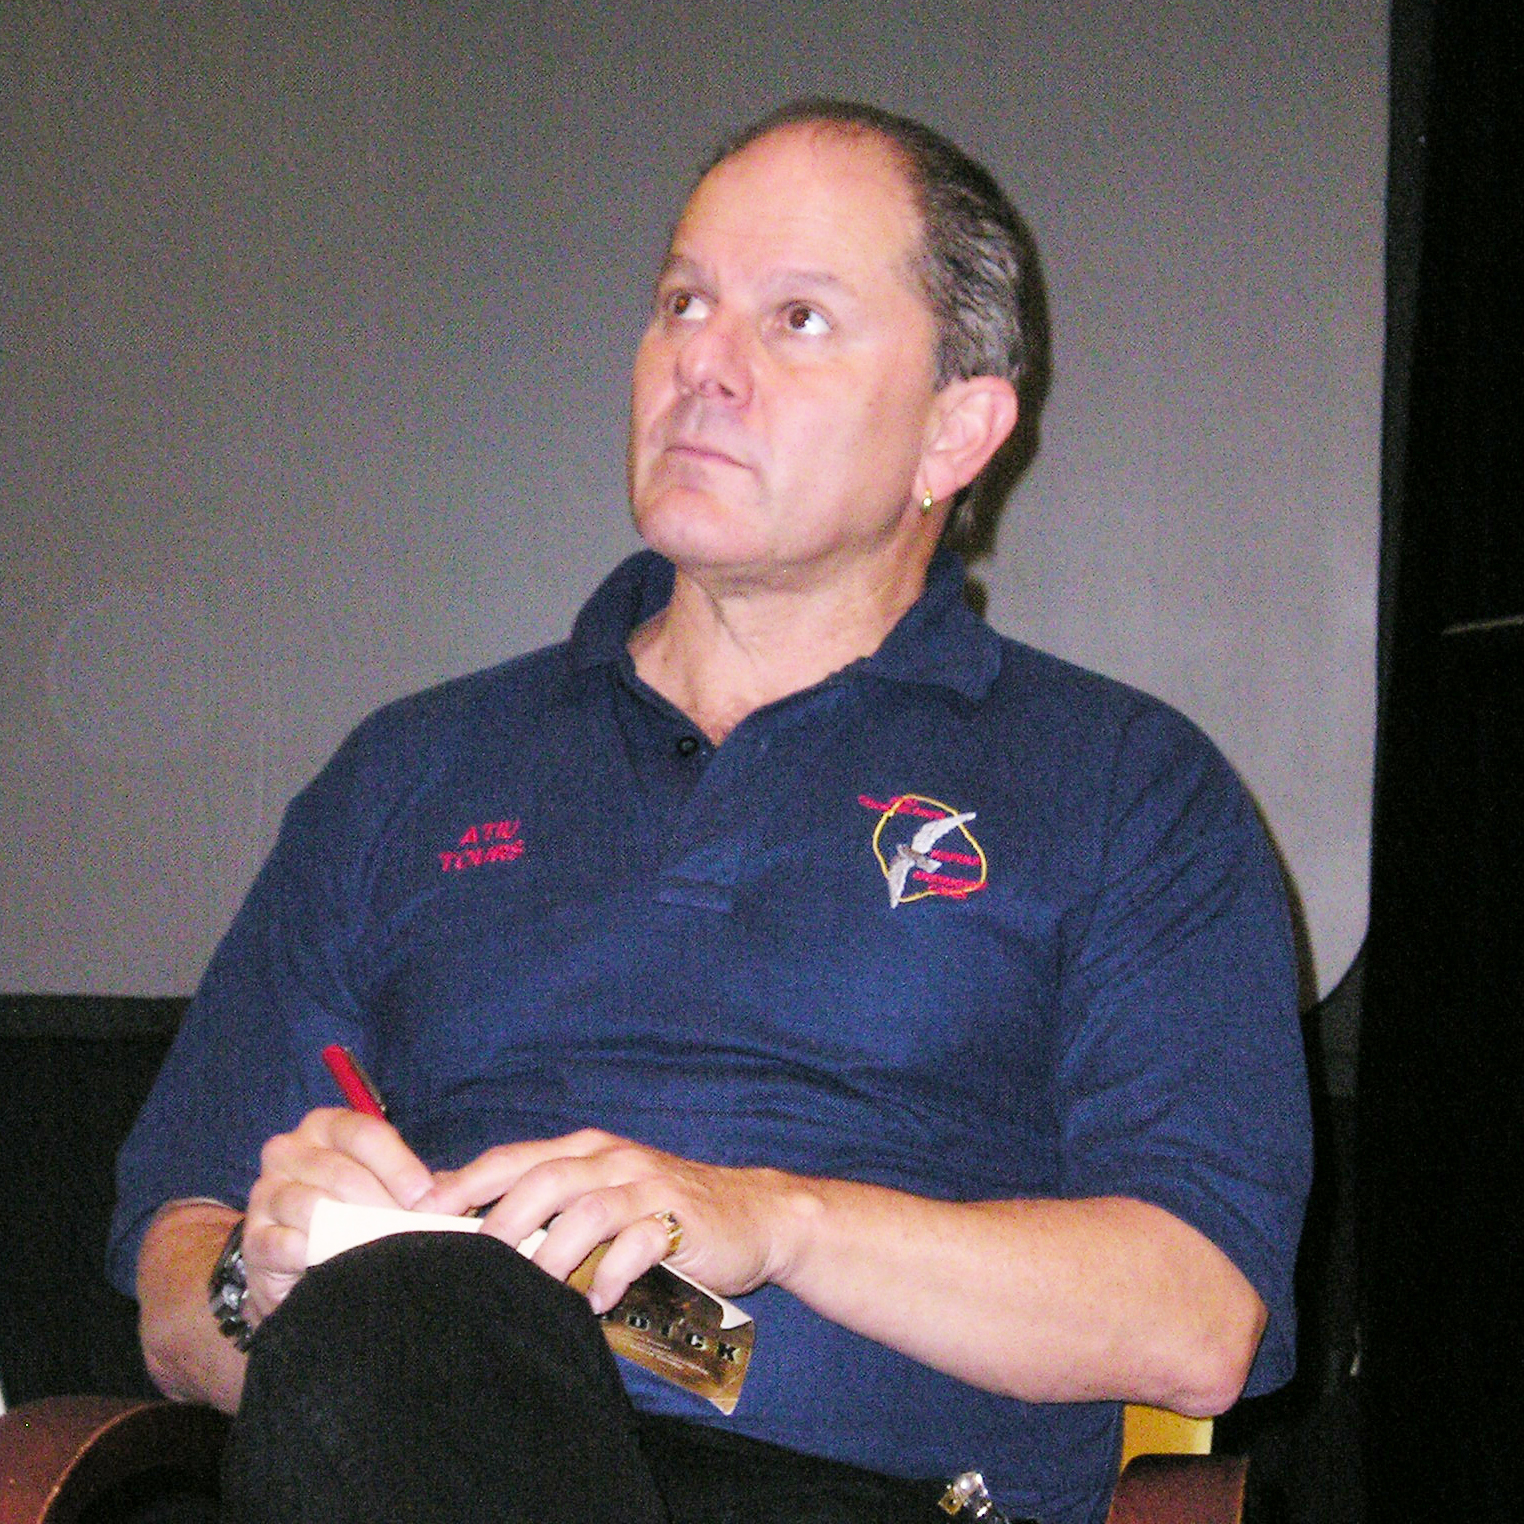 Foster at [[BayCon]] in 2007